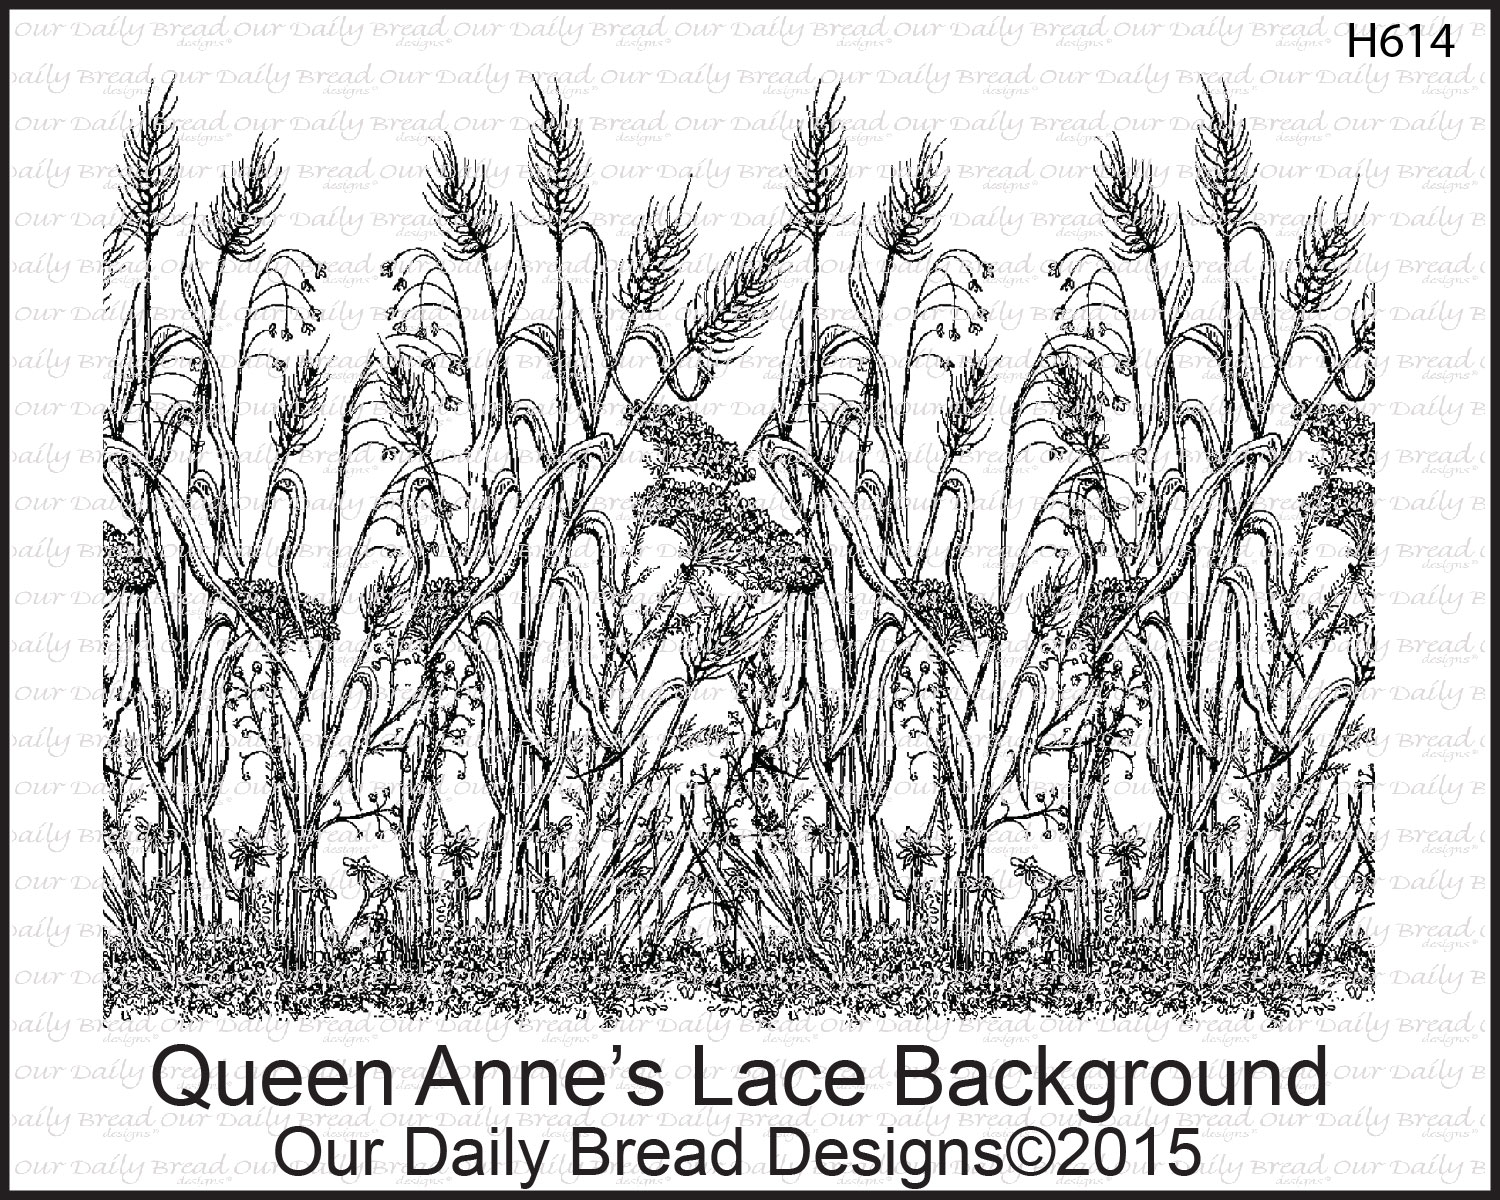 https://www.ourdailybreaddesigns.com/index.php/h614-queen-anne-s-lace-background.html